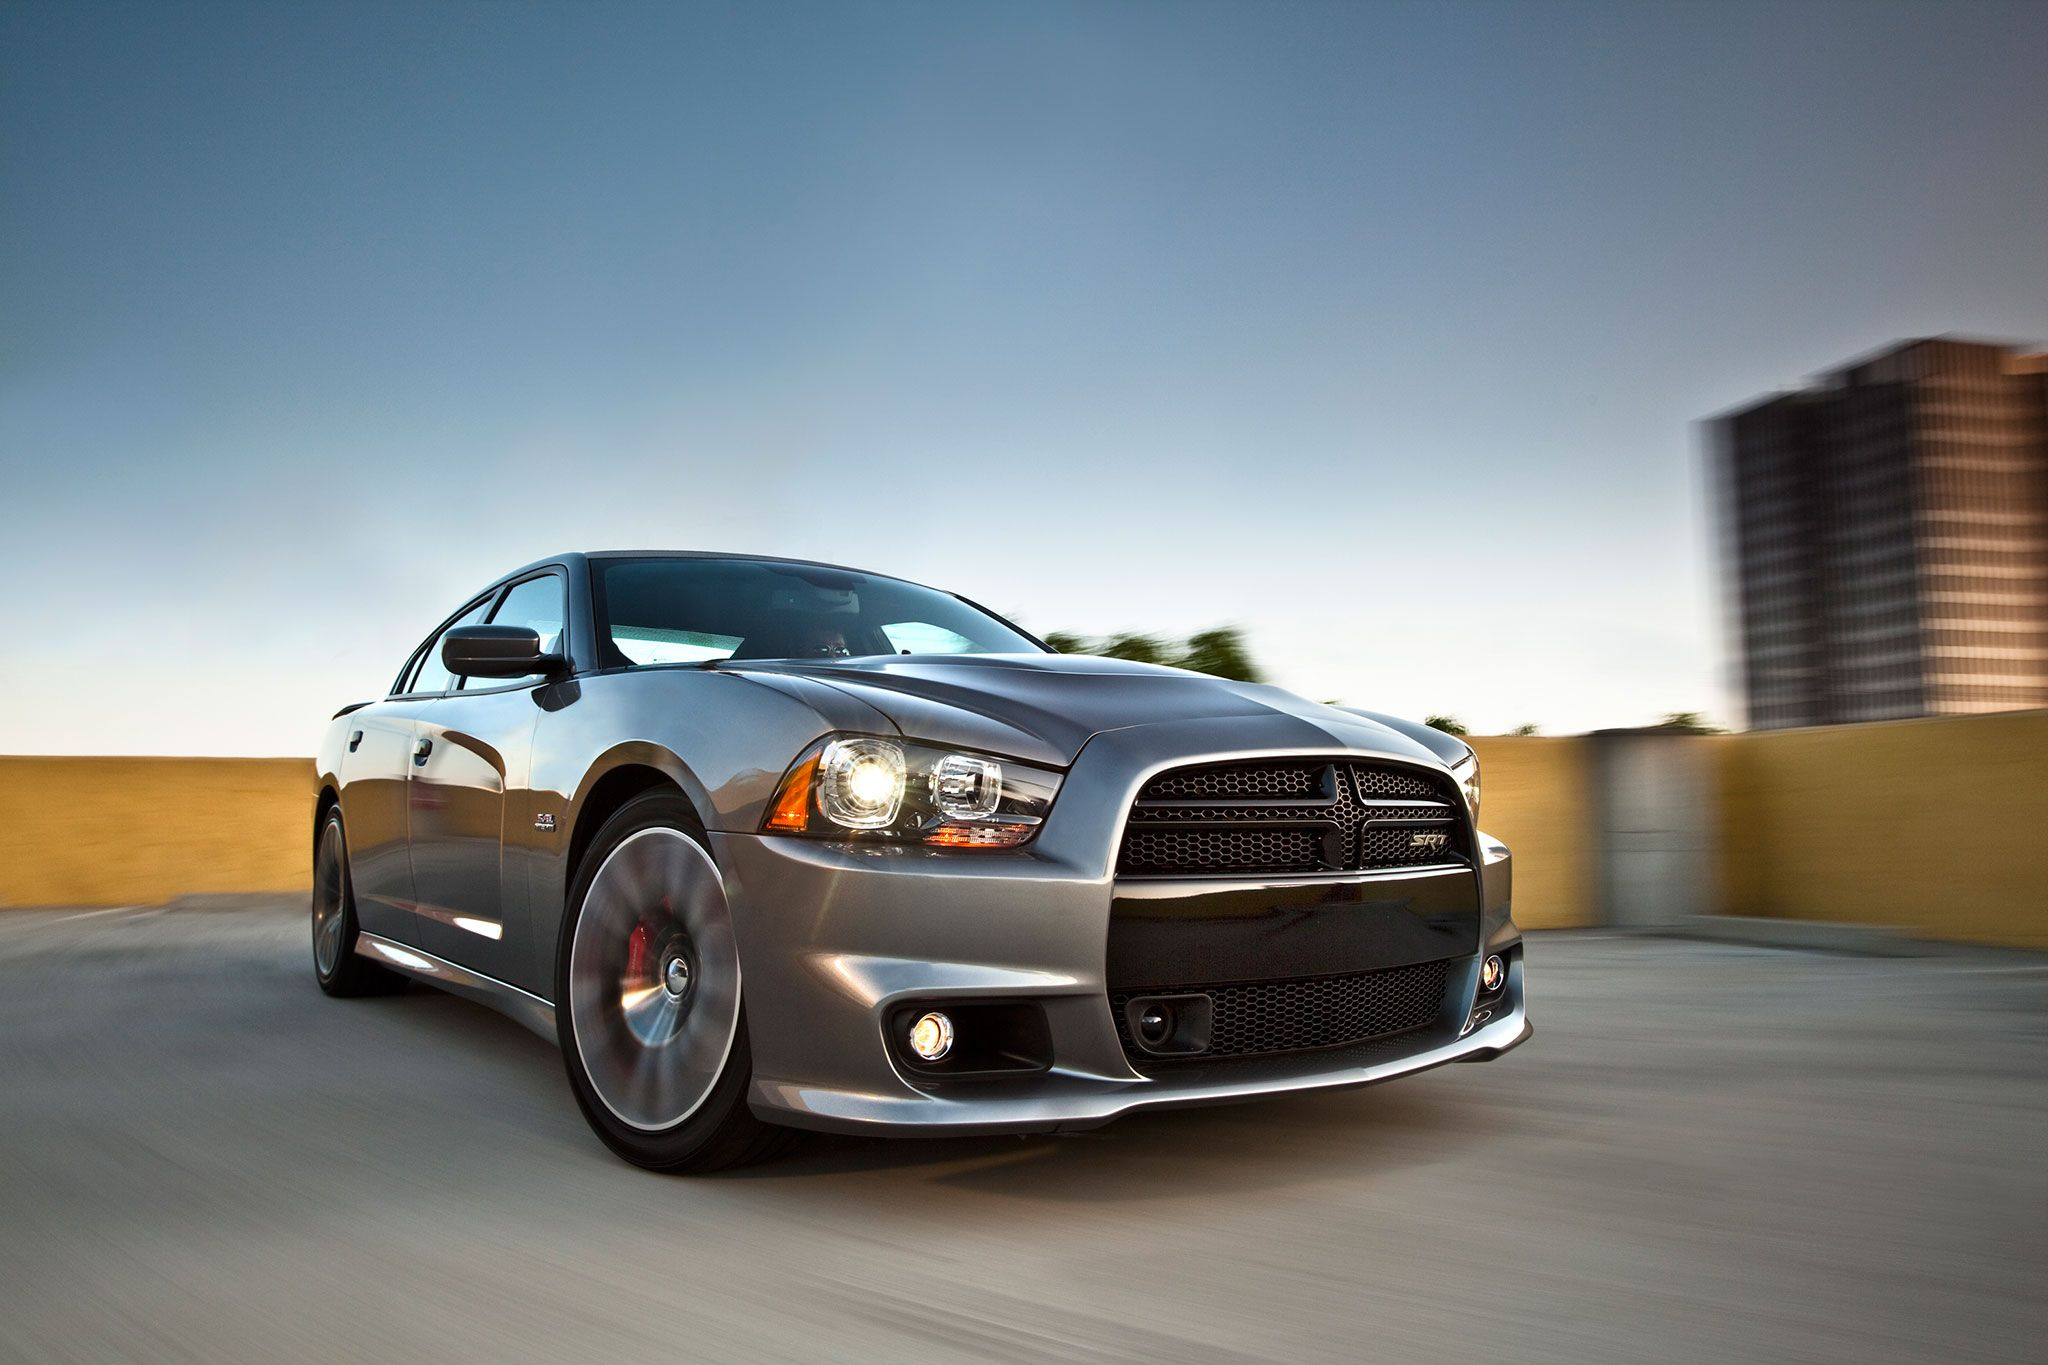 sale inspirational for srt accessories of bee super charger dodge